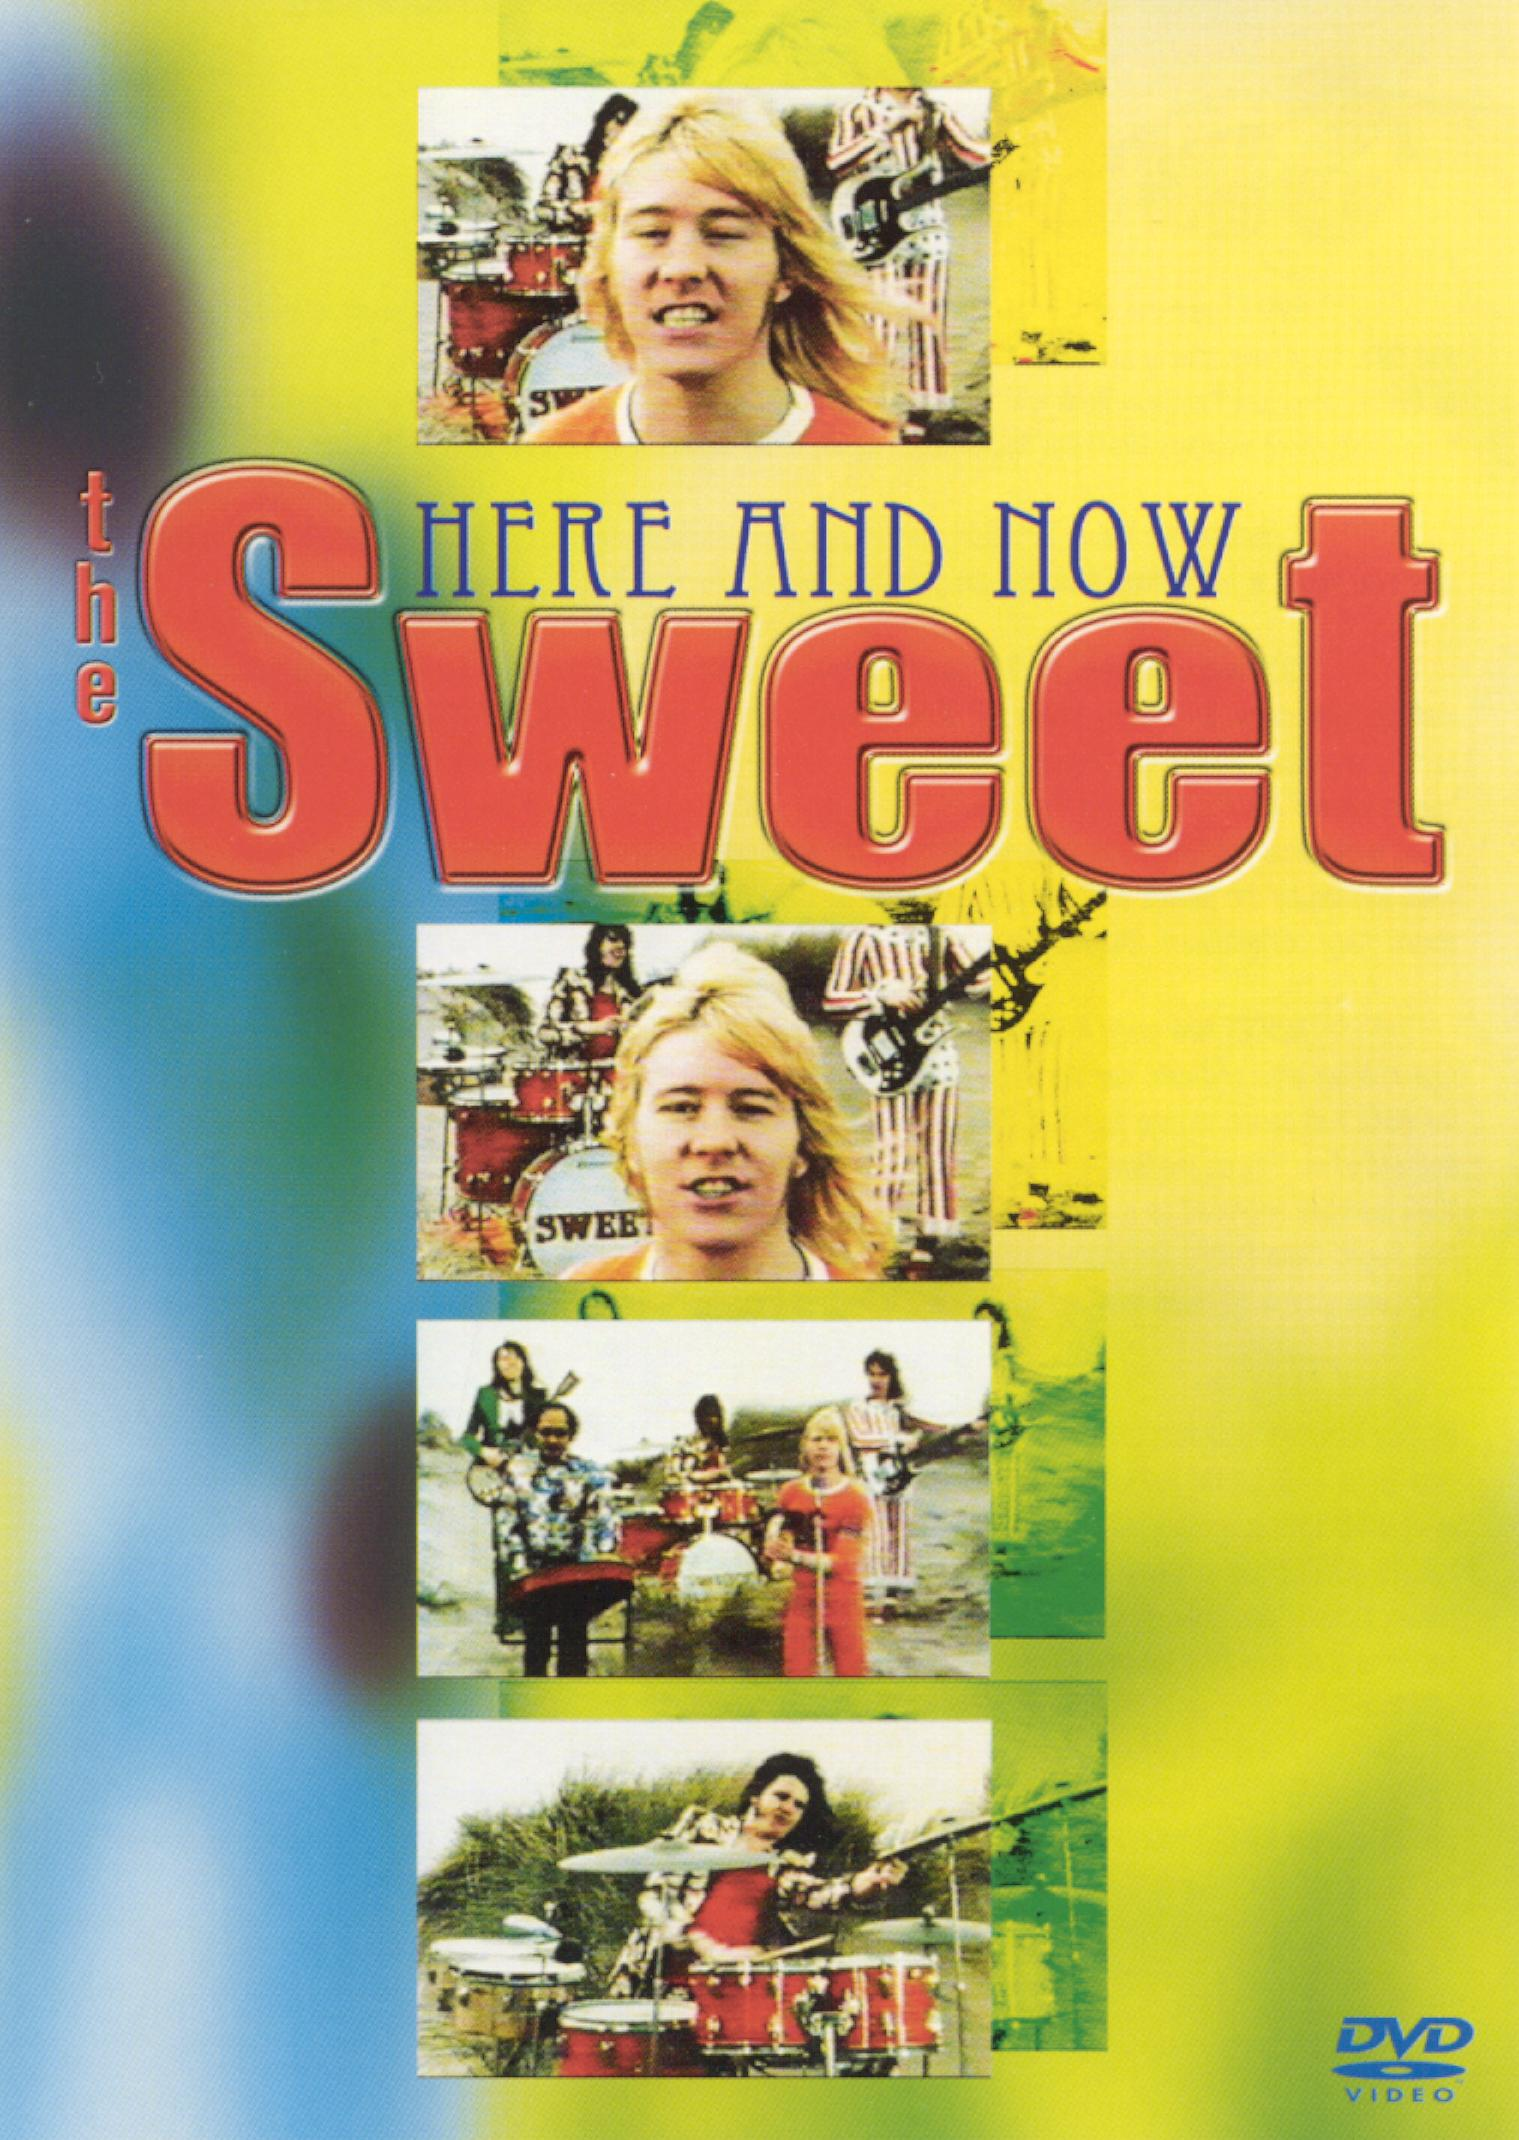 The Sweet: Here and Now